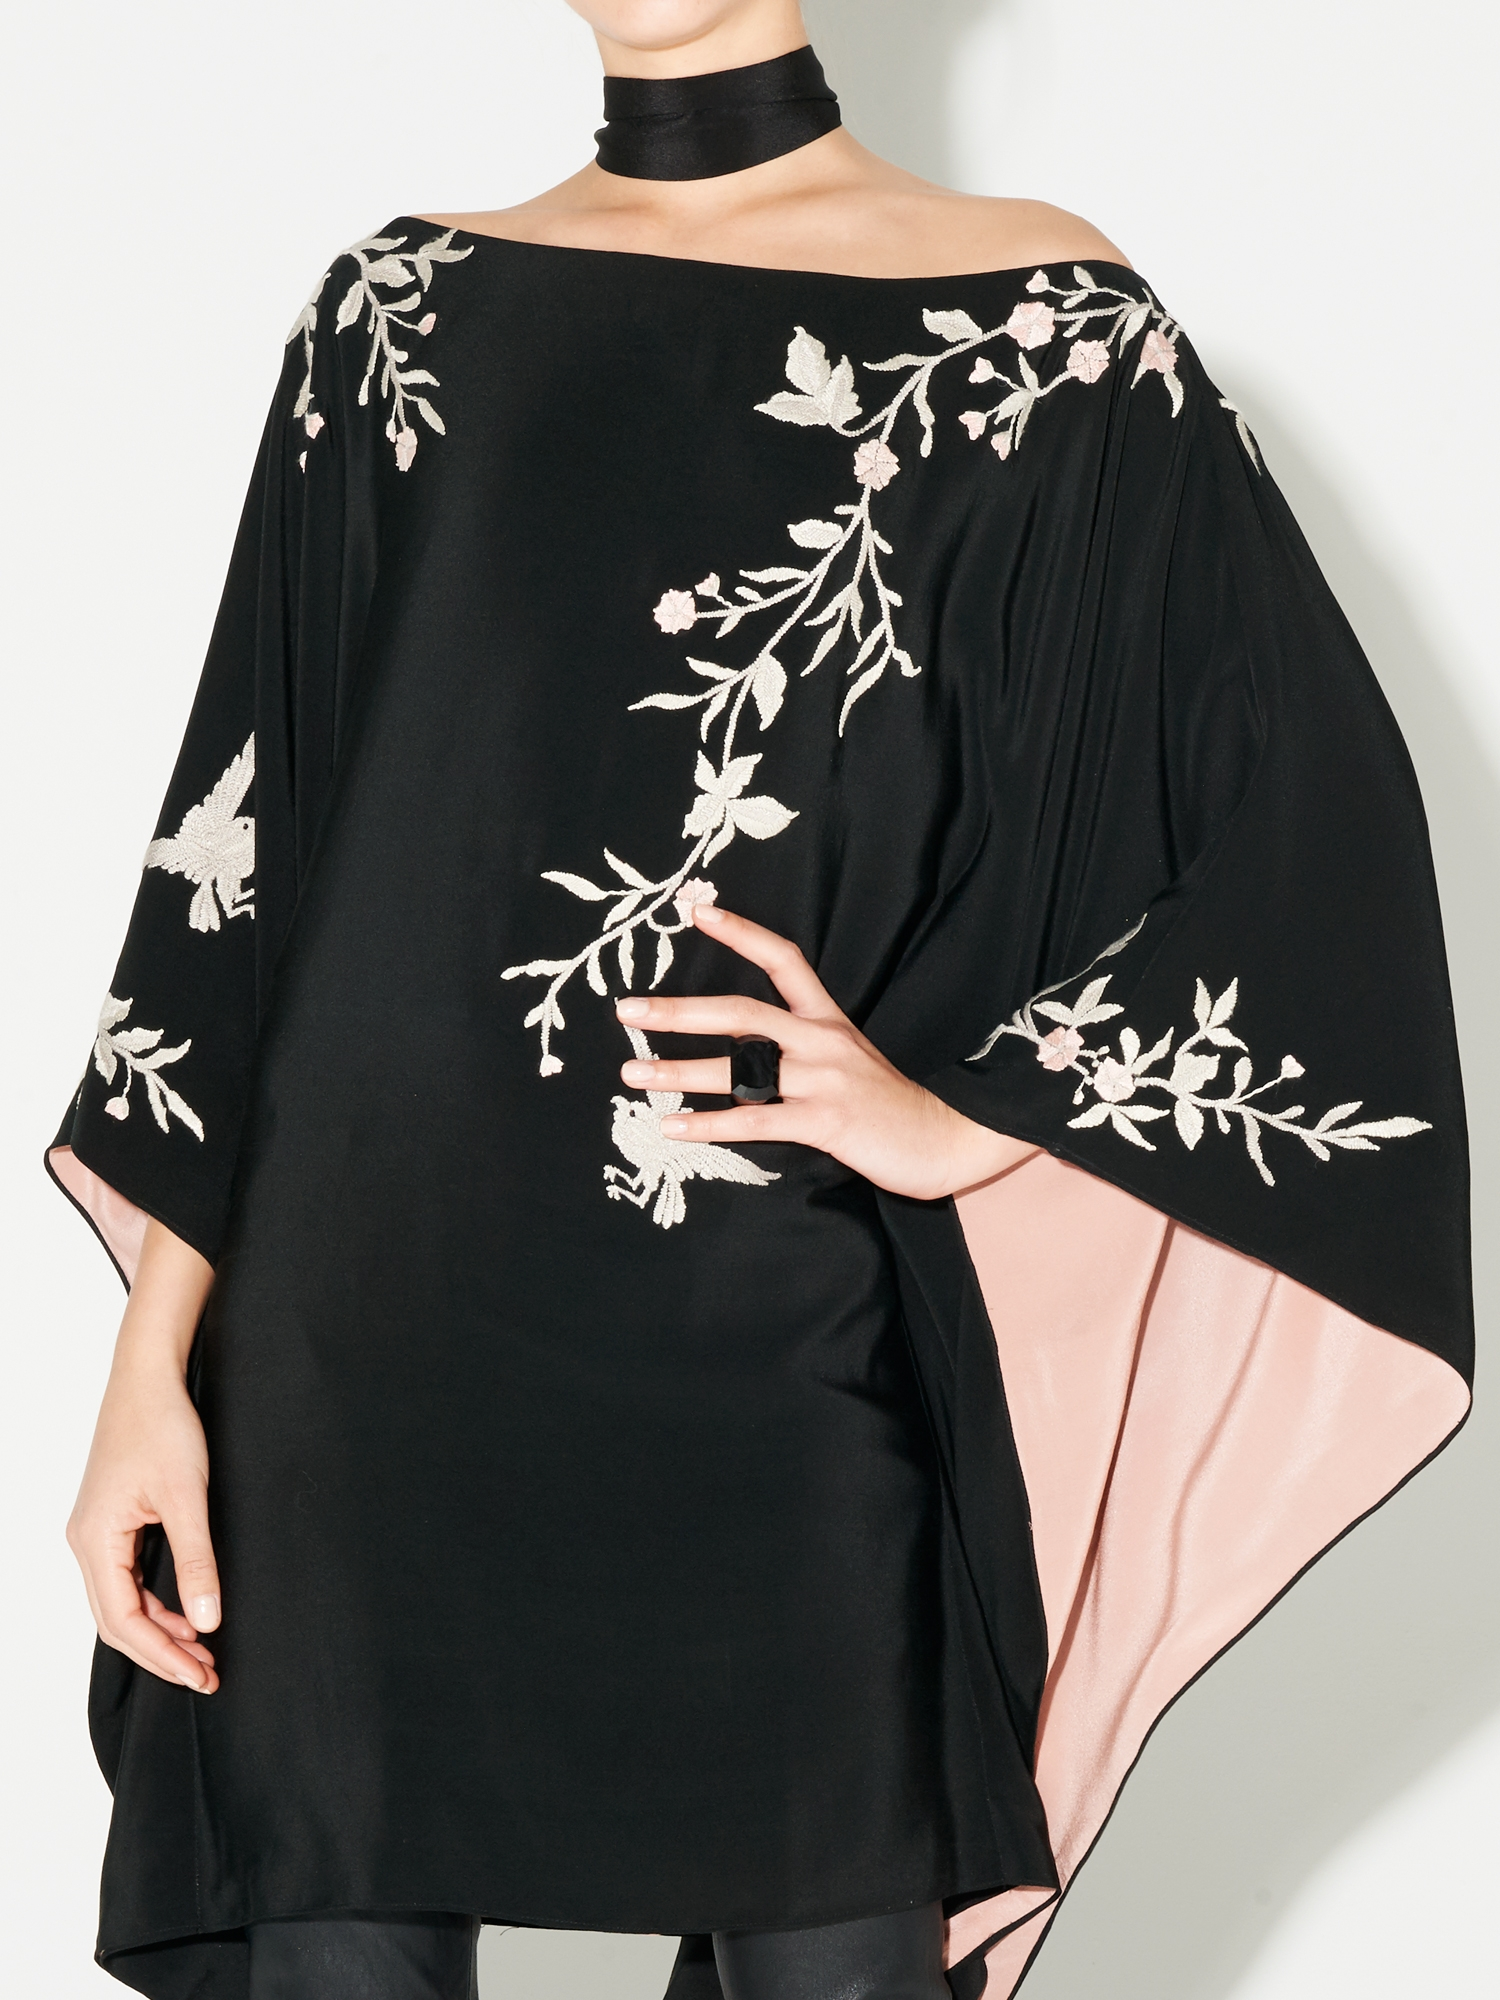 ROSE BIRD KIMONO DRESS